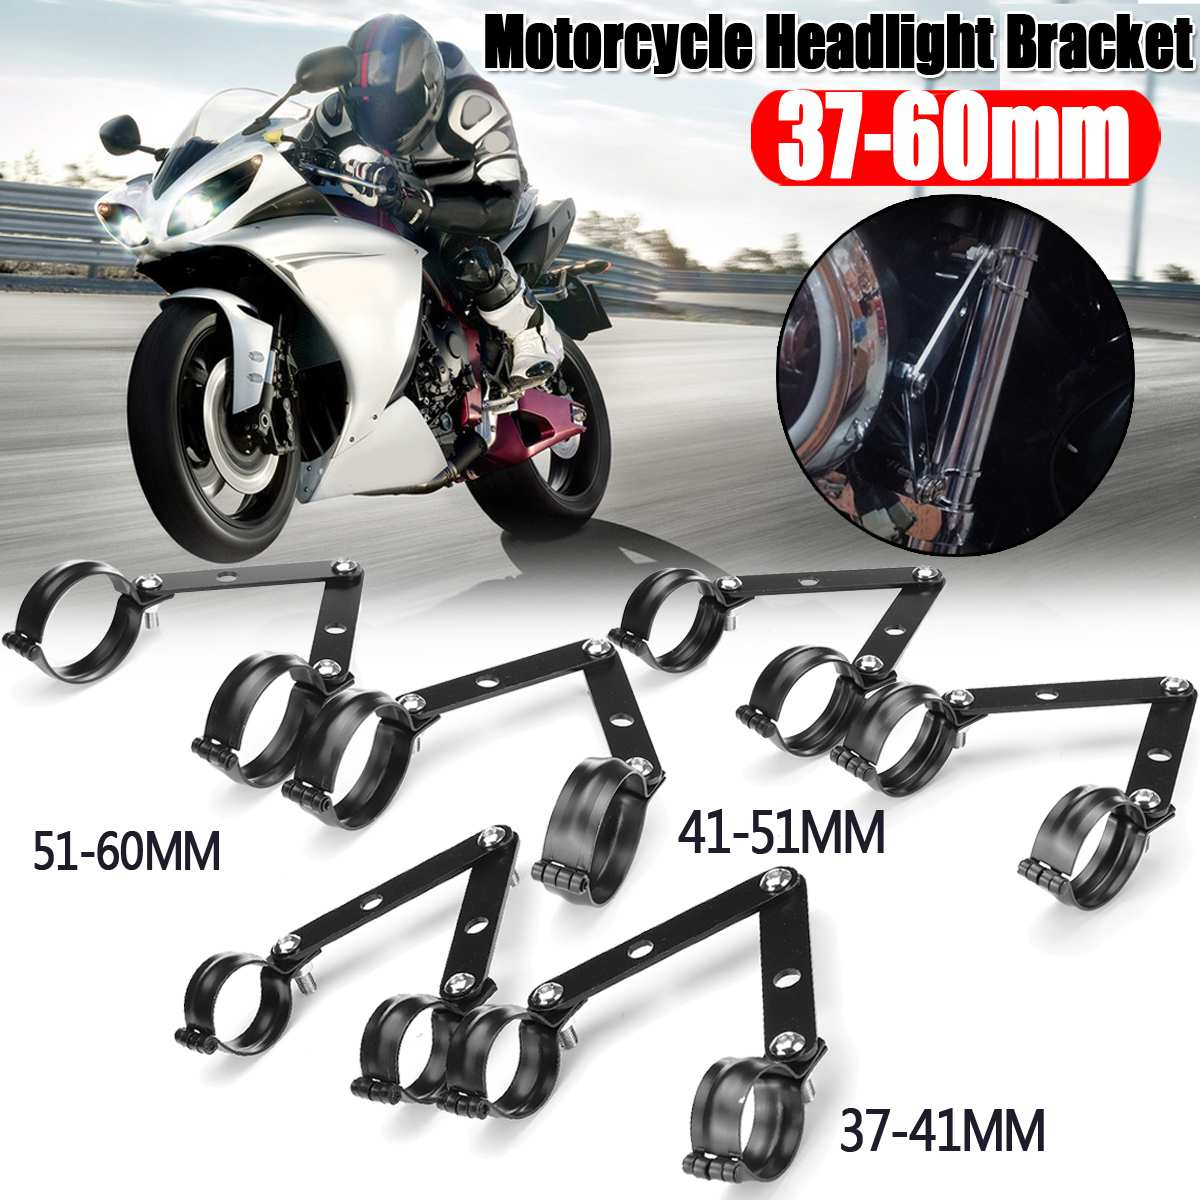 37-41mm 41-51mm 51-61mm Universal Motorcycle Headlight Bracket Mounting Adjustable Fork Mount Clamp Black HeadLamp Holder